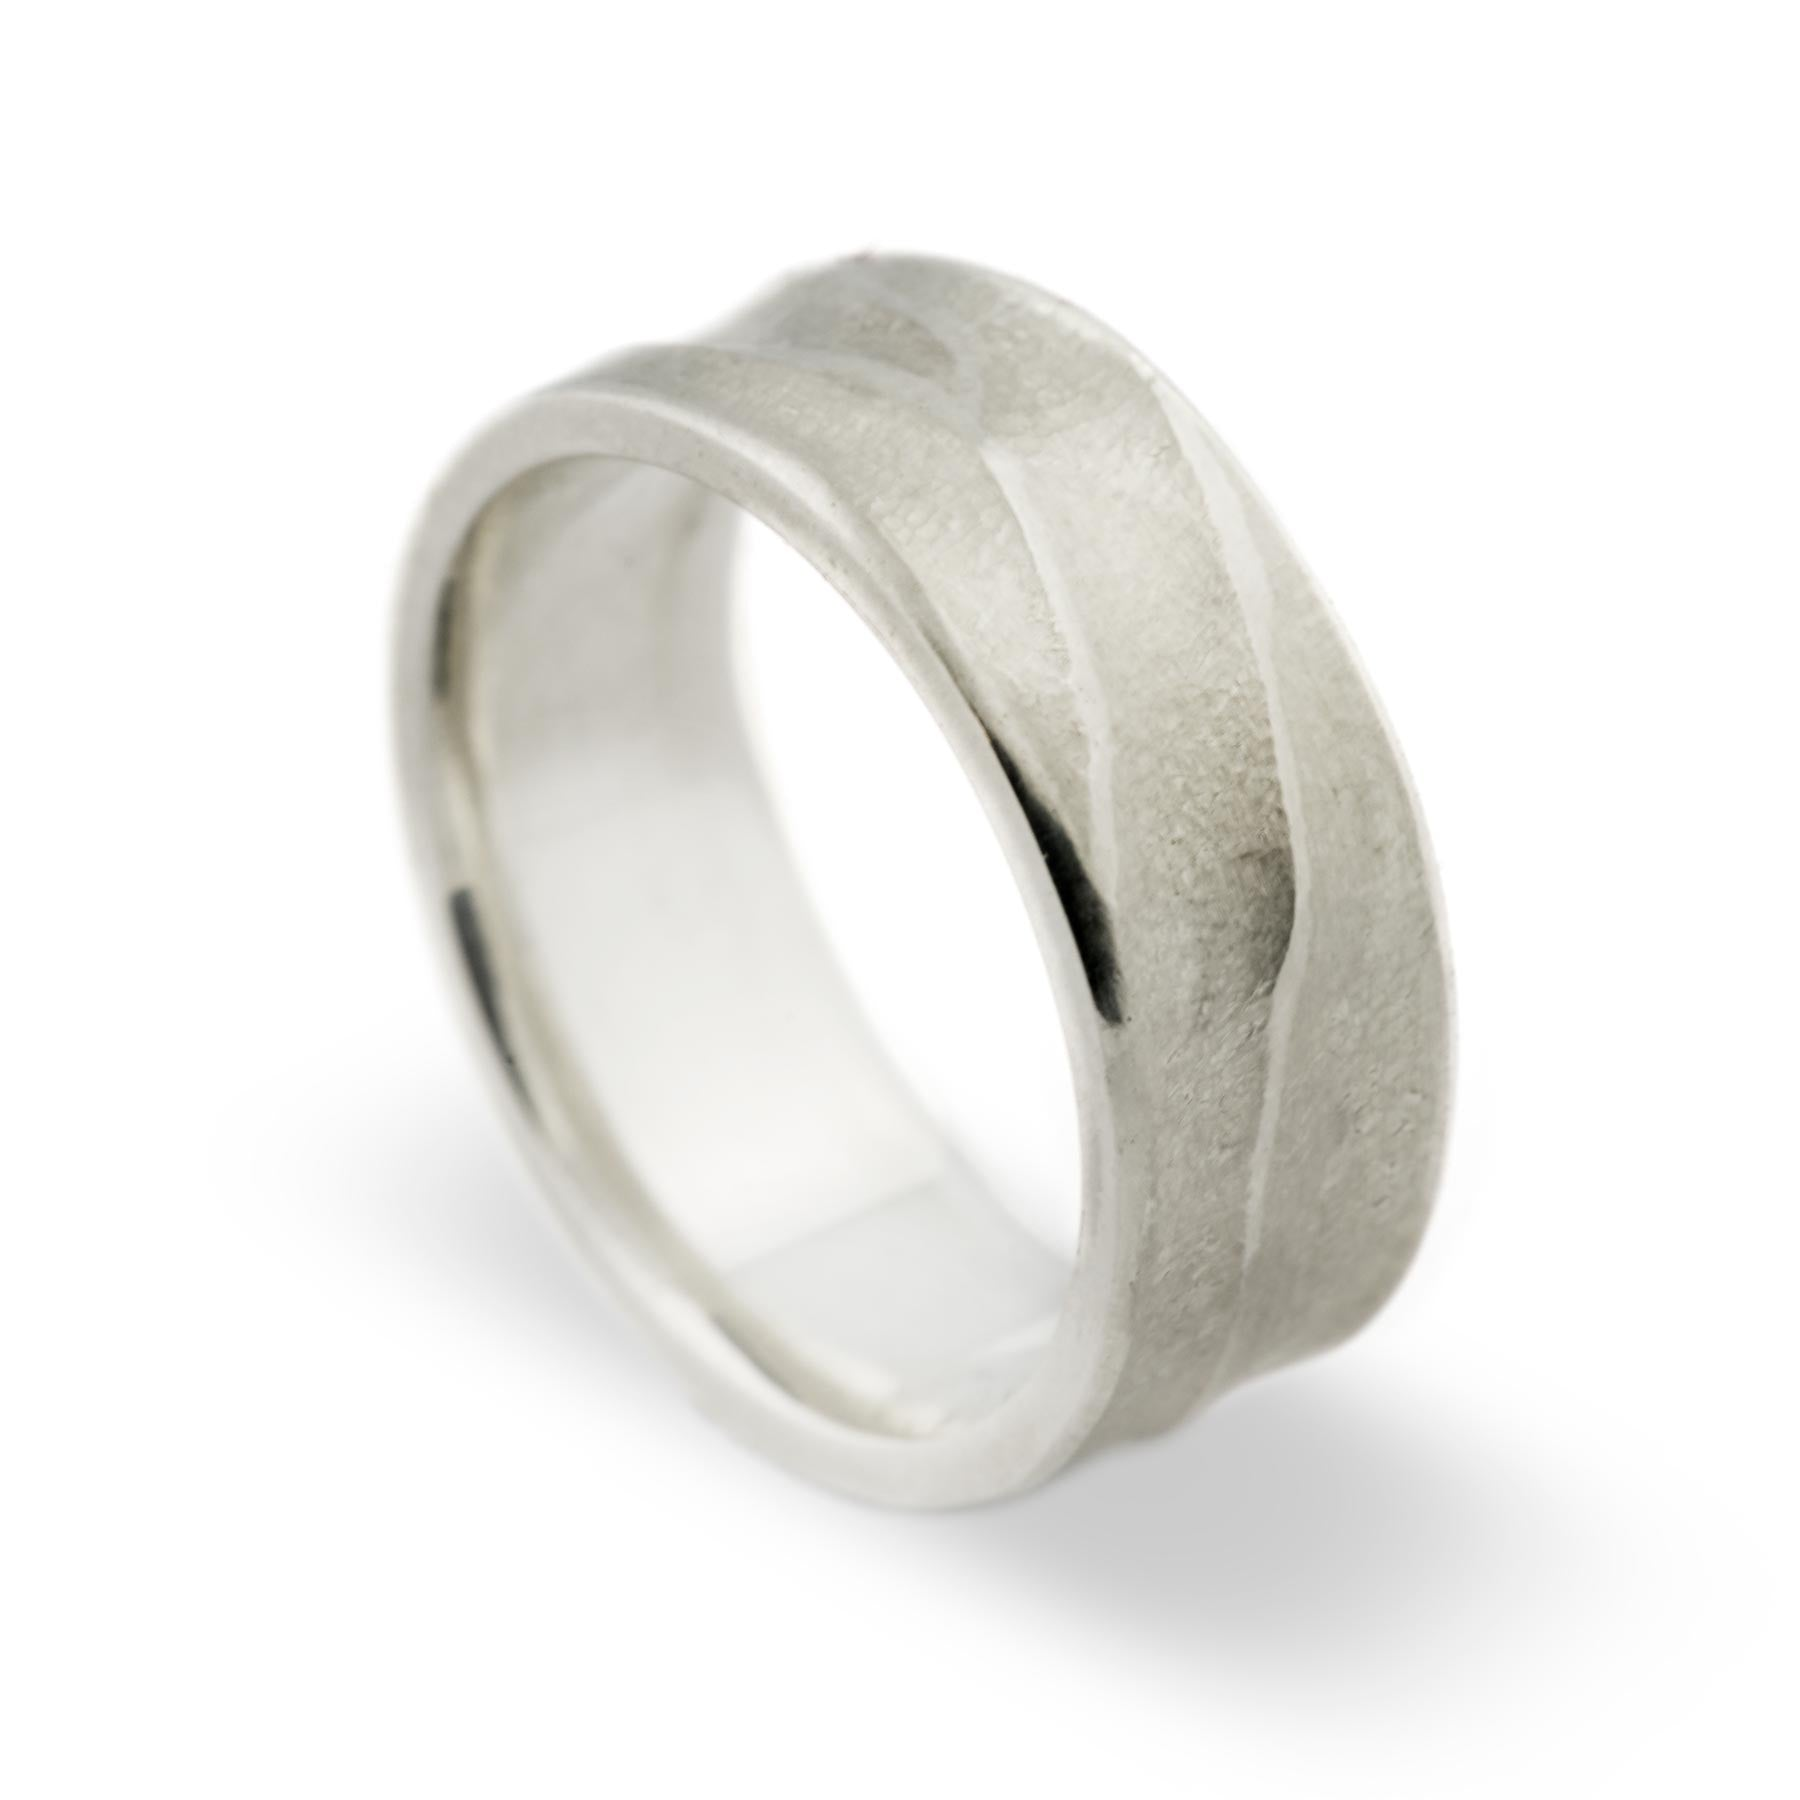 Sterling Silver Topography Wedding Band - Era Design Vancouver